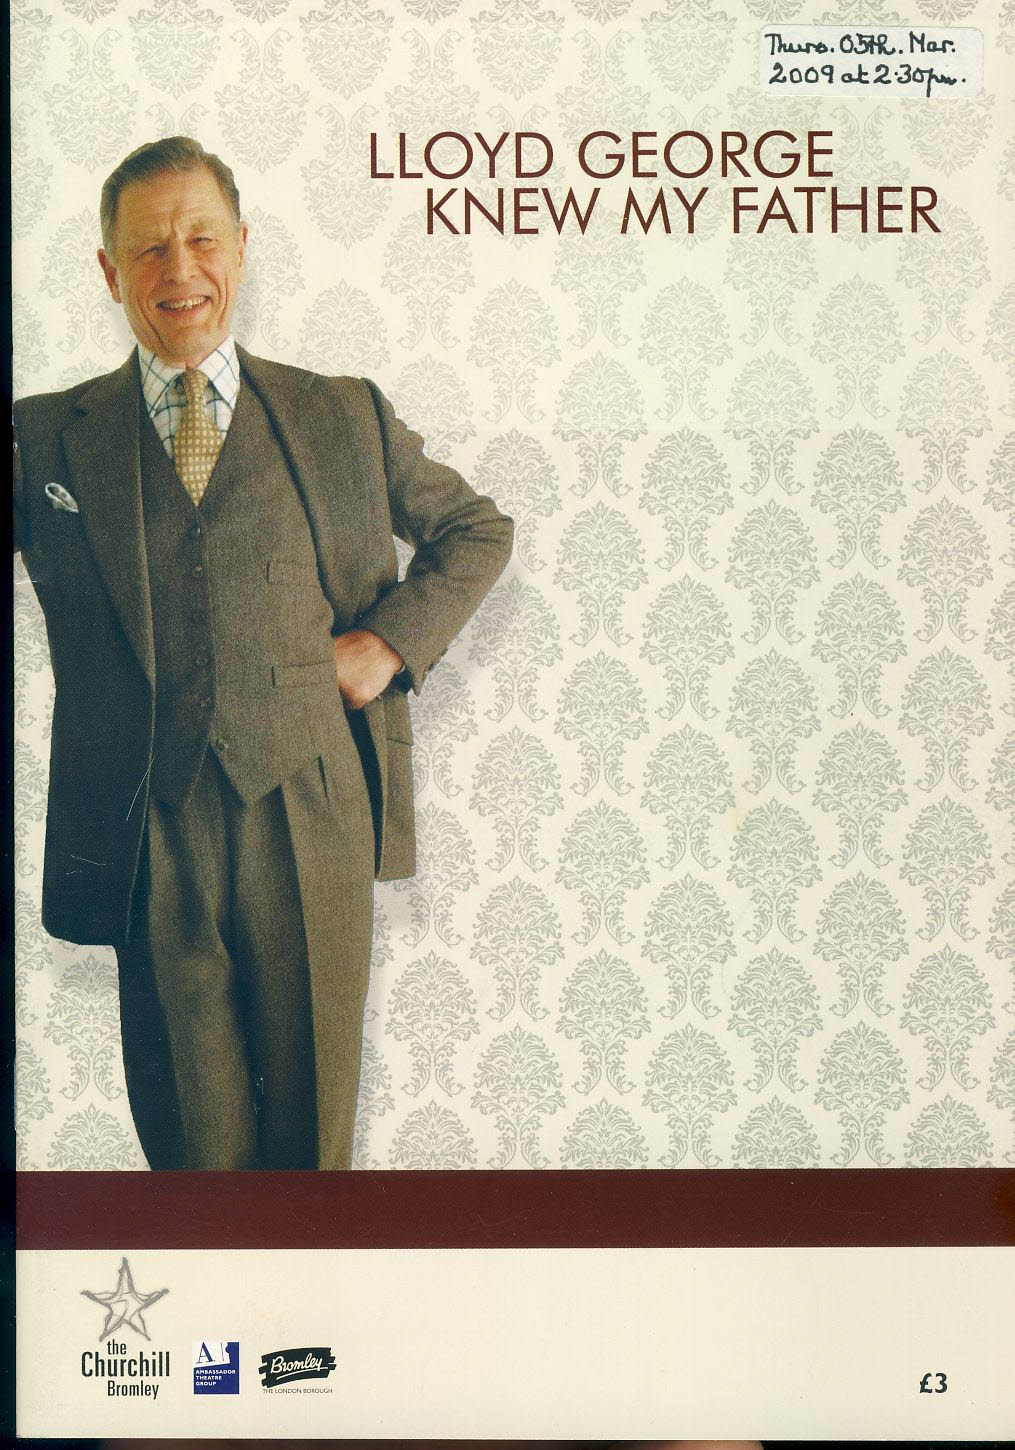 LLOYD GEORGE KNEW MY FATHER 2009 Theatre Programme EDWARD FOX & HELEN RYAN refb1516 Measures approx 17cm x 24cm. Date label on cover.